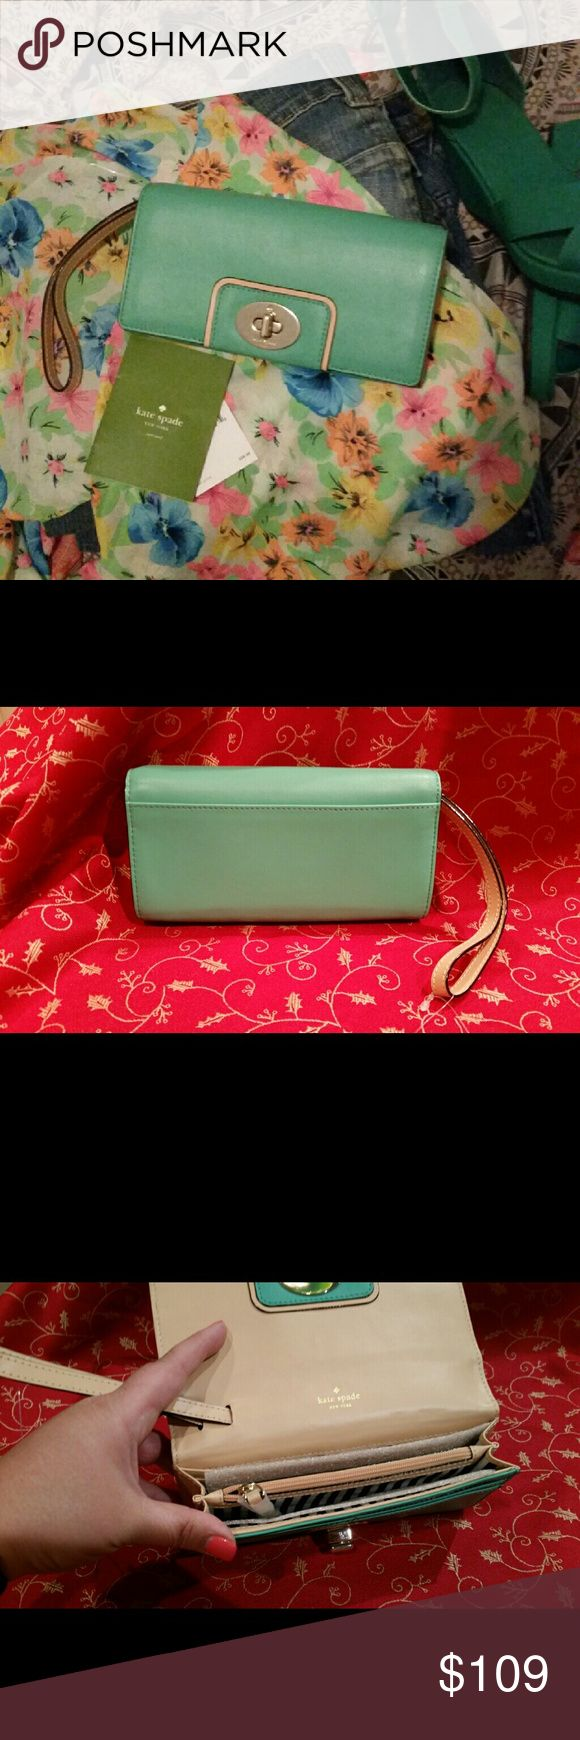 Kate Spade Turnlock Wallet SALE!! Brand new with one blemish in the leather on the front of wallet as shown. Hard to see in person without looking for it.  The zoom and lighting magnified it. Aquacove (941) coveted color.  Mara WLRU1598.  Former Smoking and pet friendly home. kate spade Bags Wallets